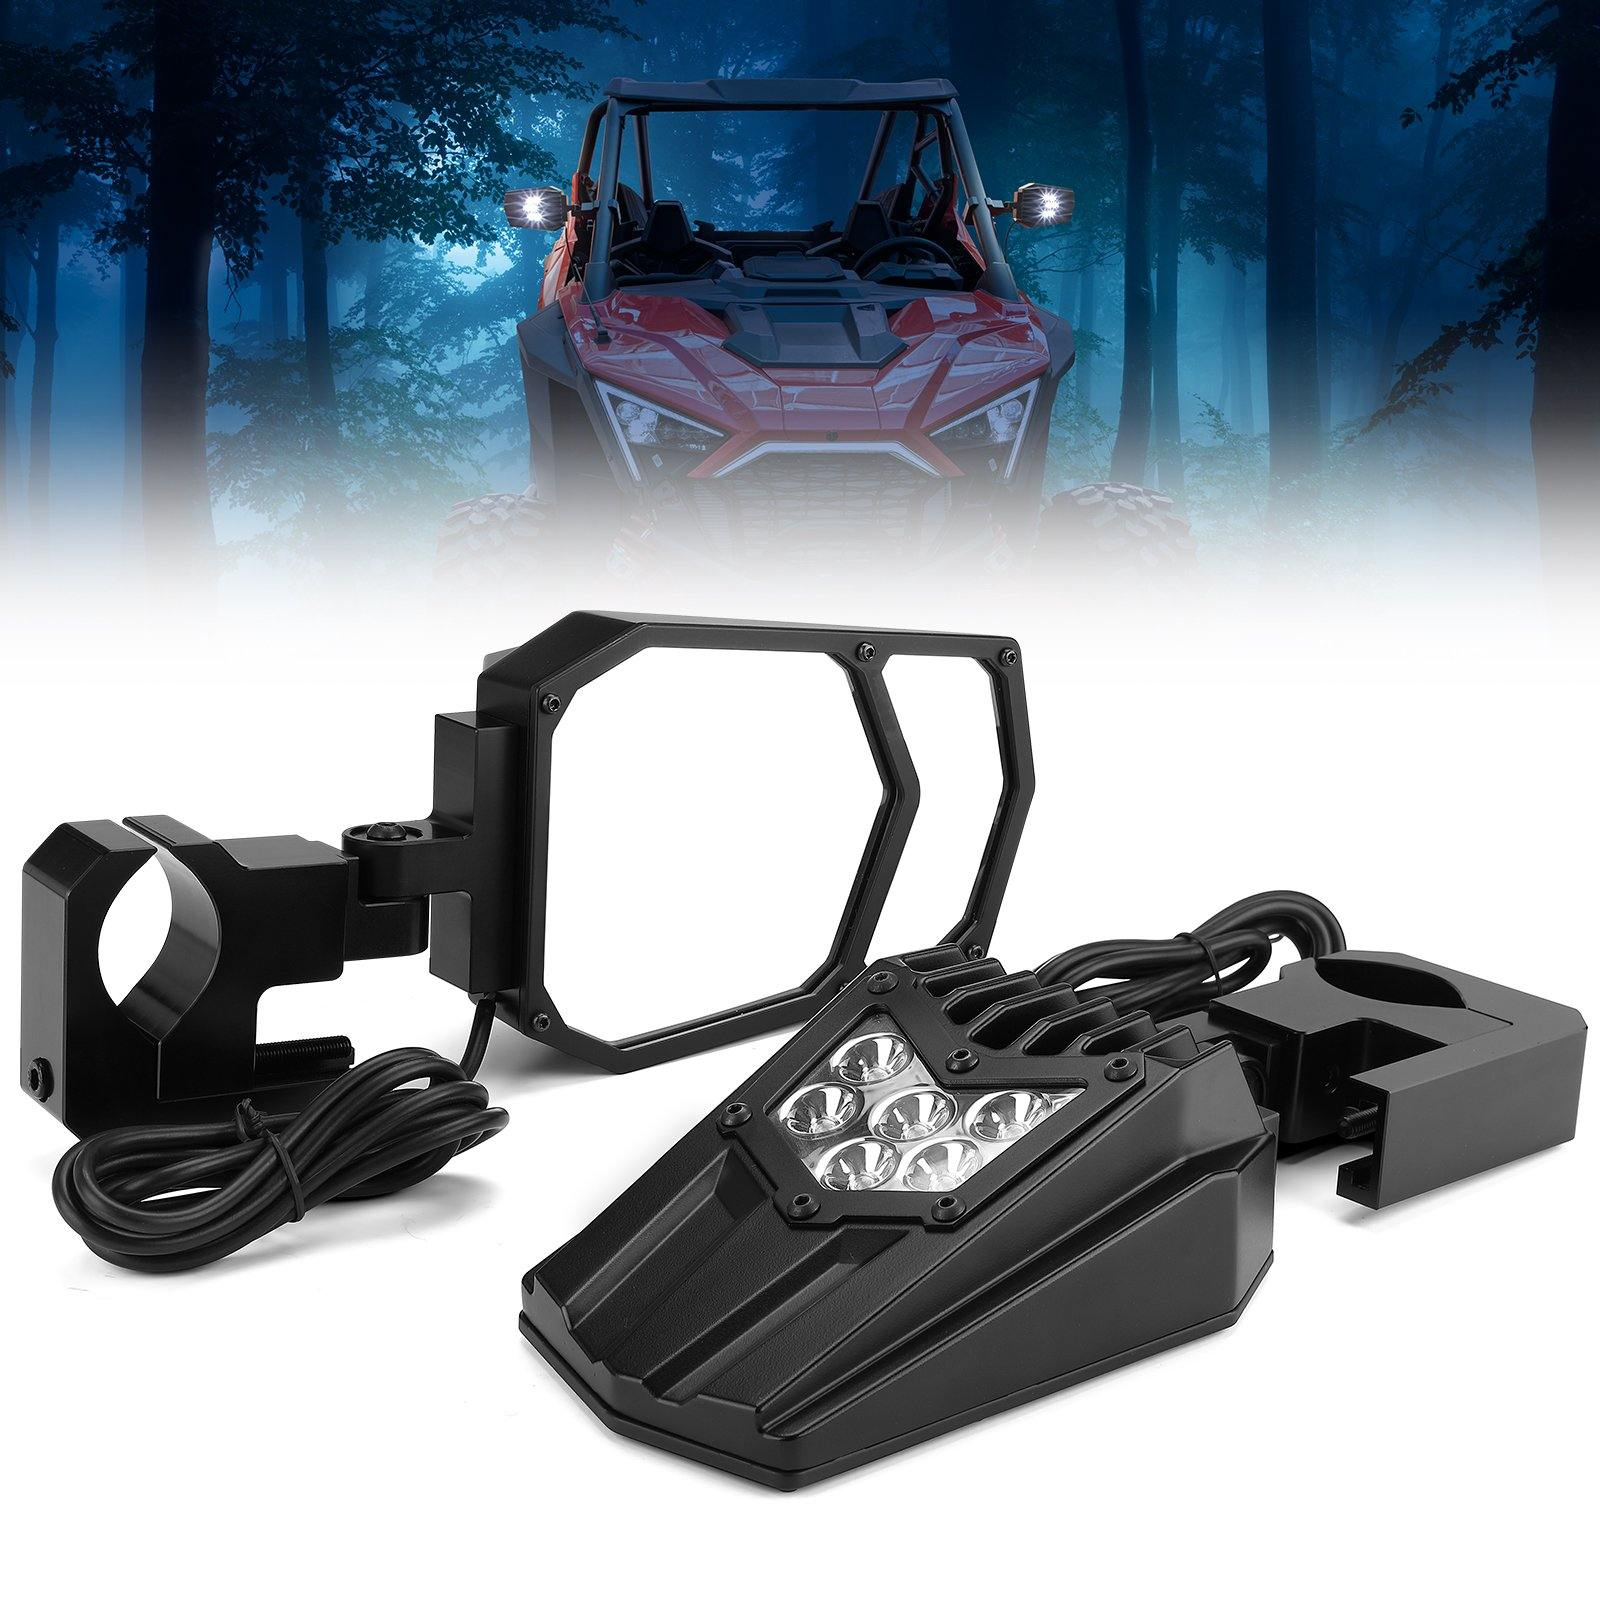 Universal UTV LED Light Mirror (New design) Fits 1.5